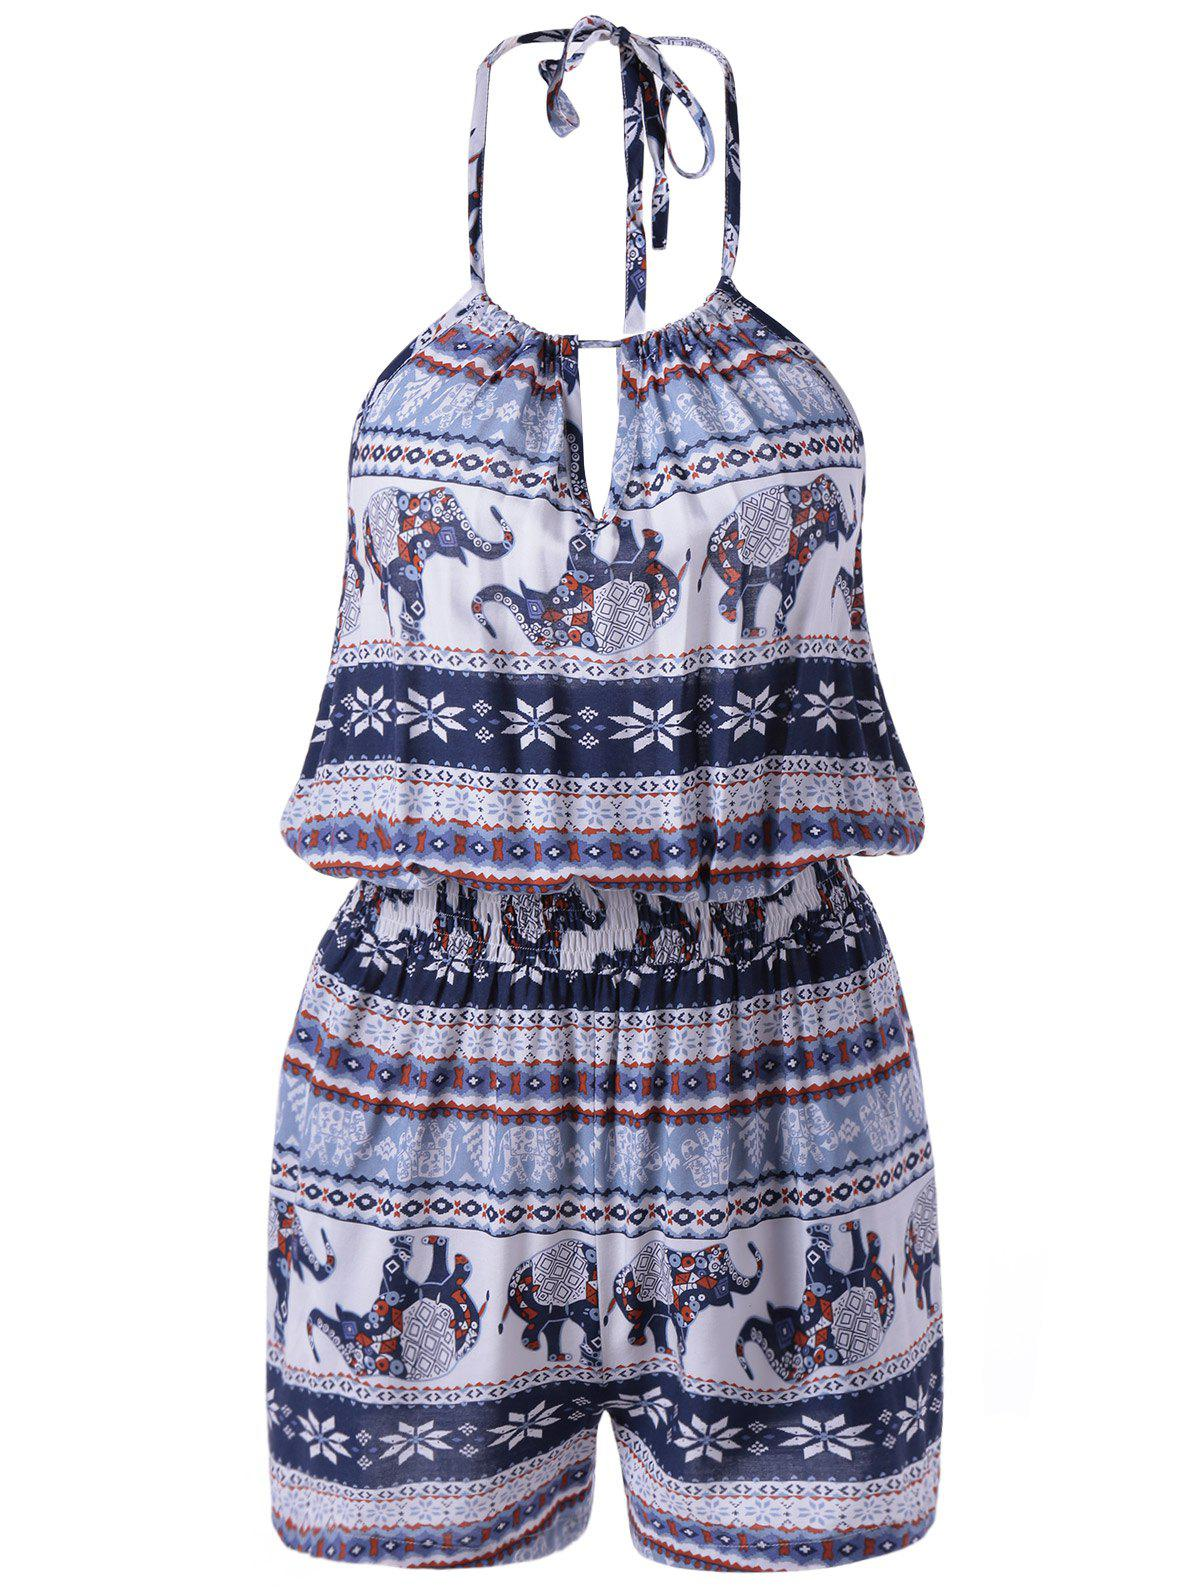 Simple Style Women's National Design Spaghetti Strap Print Romper - XL COLORMIX